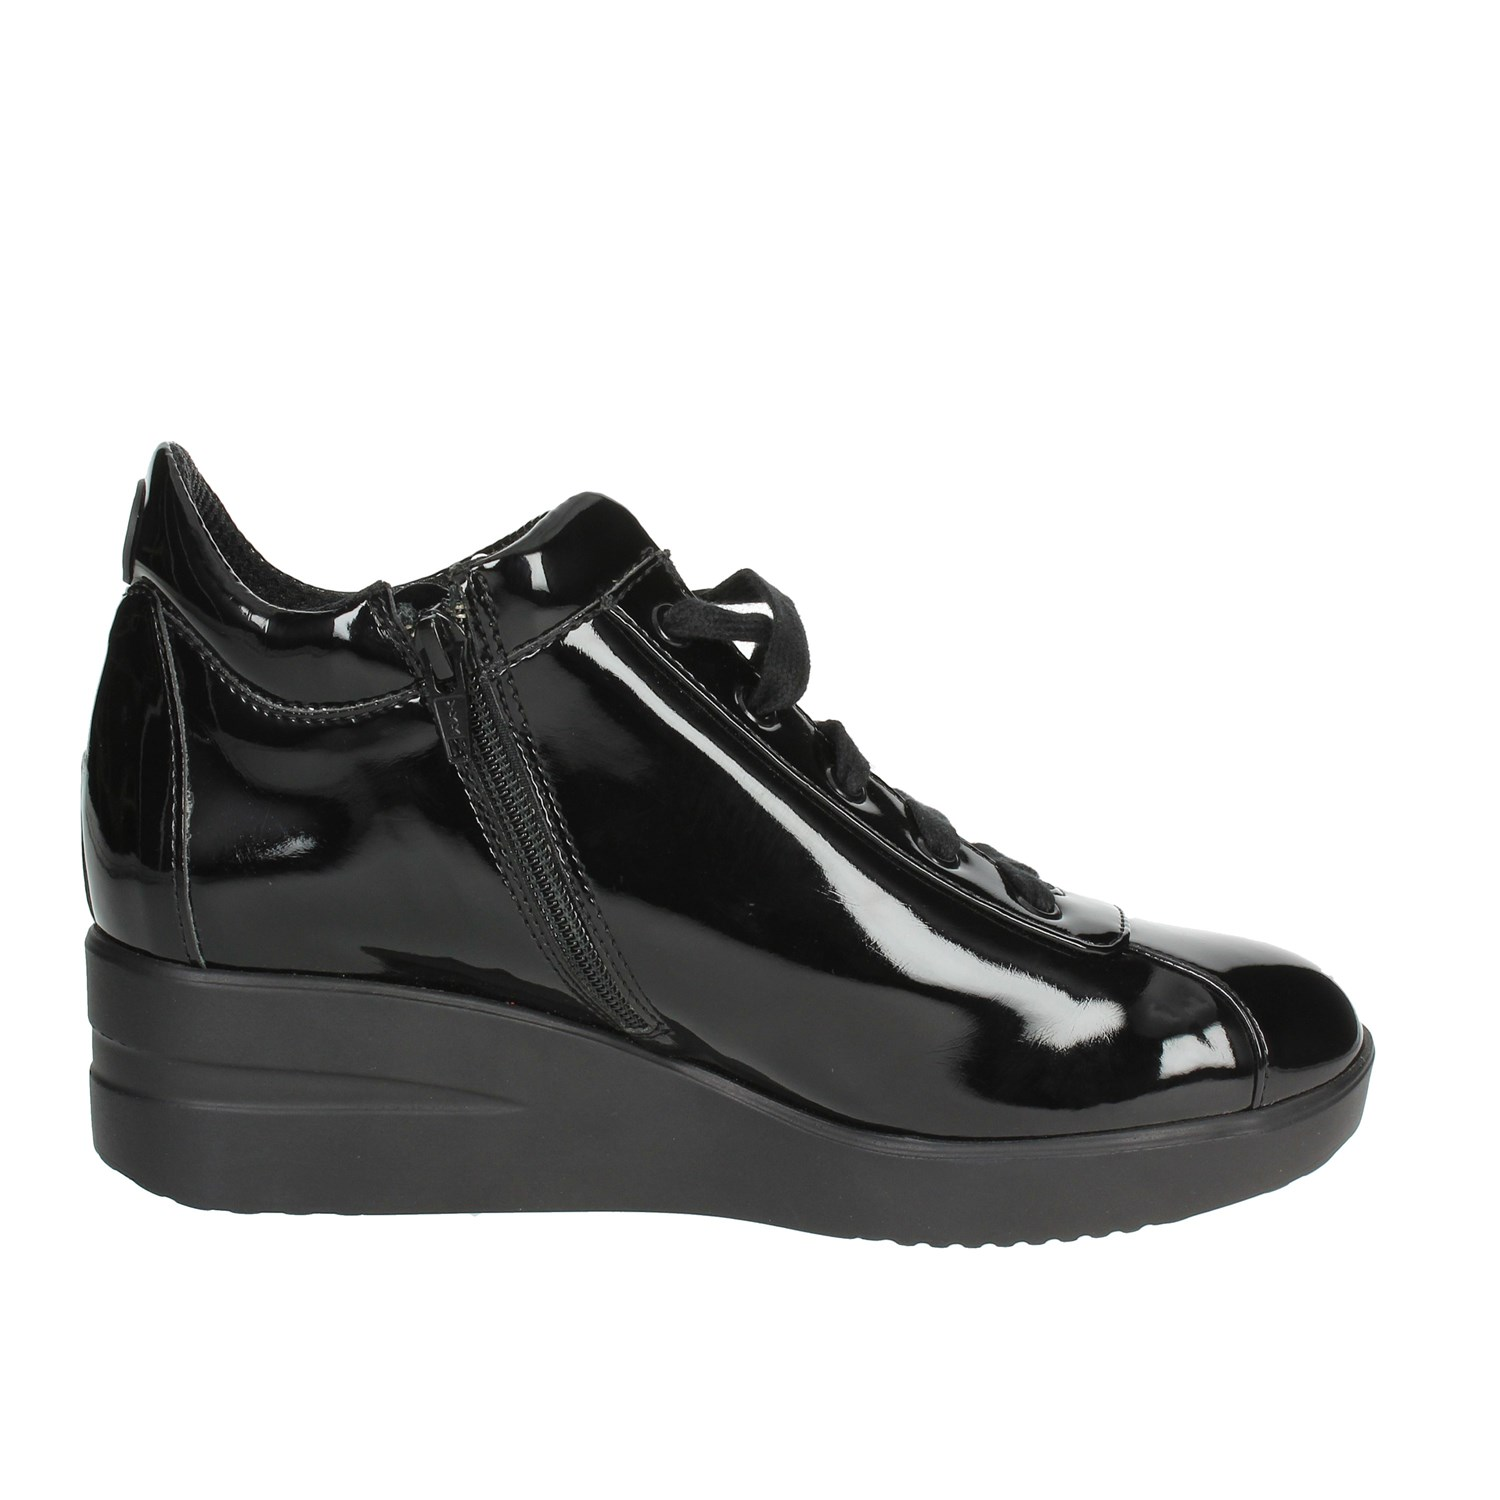 Agile By Rucoline  226-44 Black Low Sneakers Women Fall//Winter